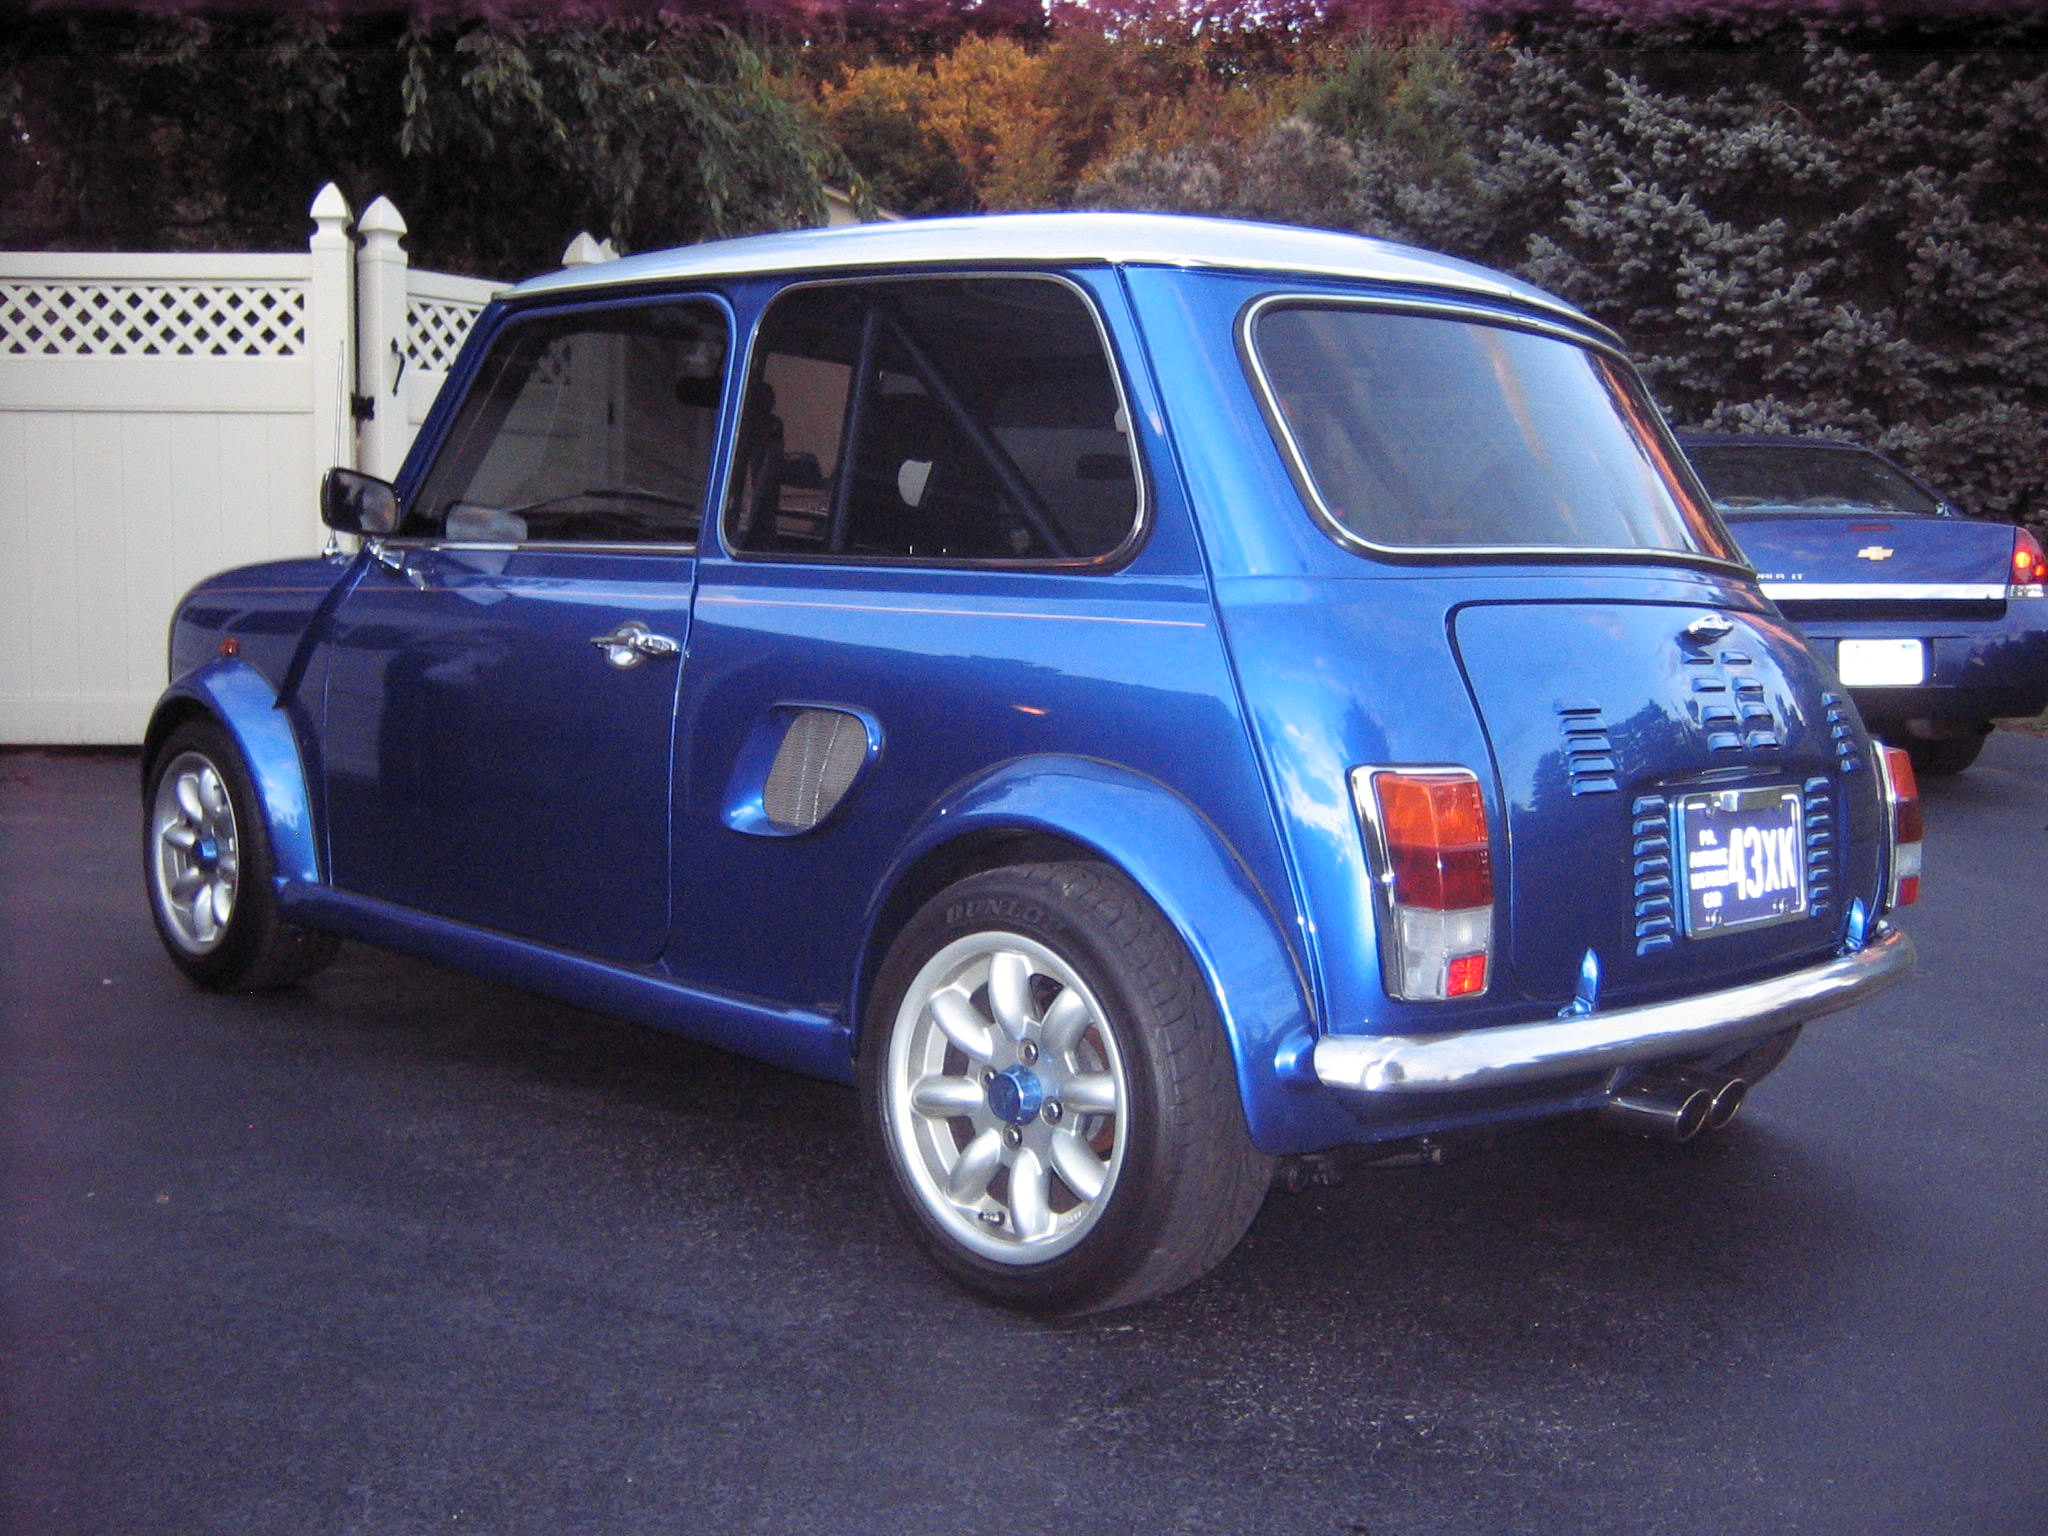 for sale mini cooper with a mid engine turbo b18 engine. Black Bedroom Furniture Sets. Home Design Ideas